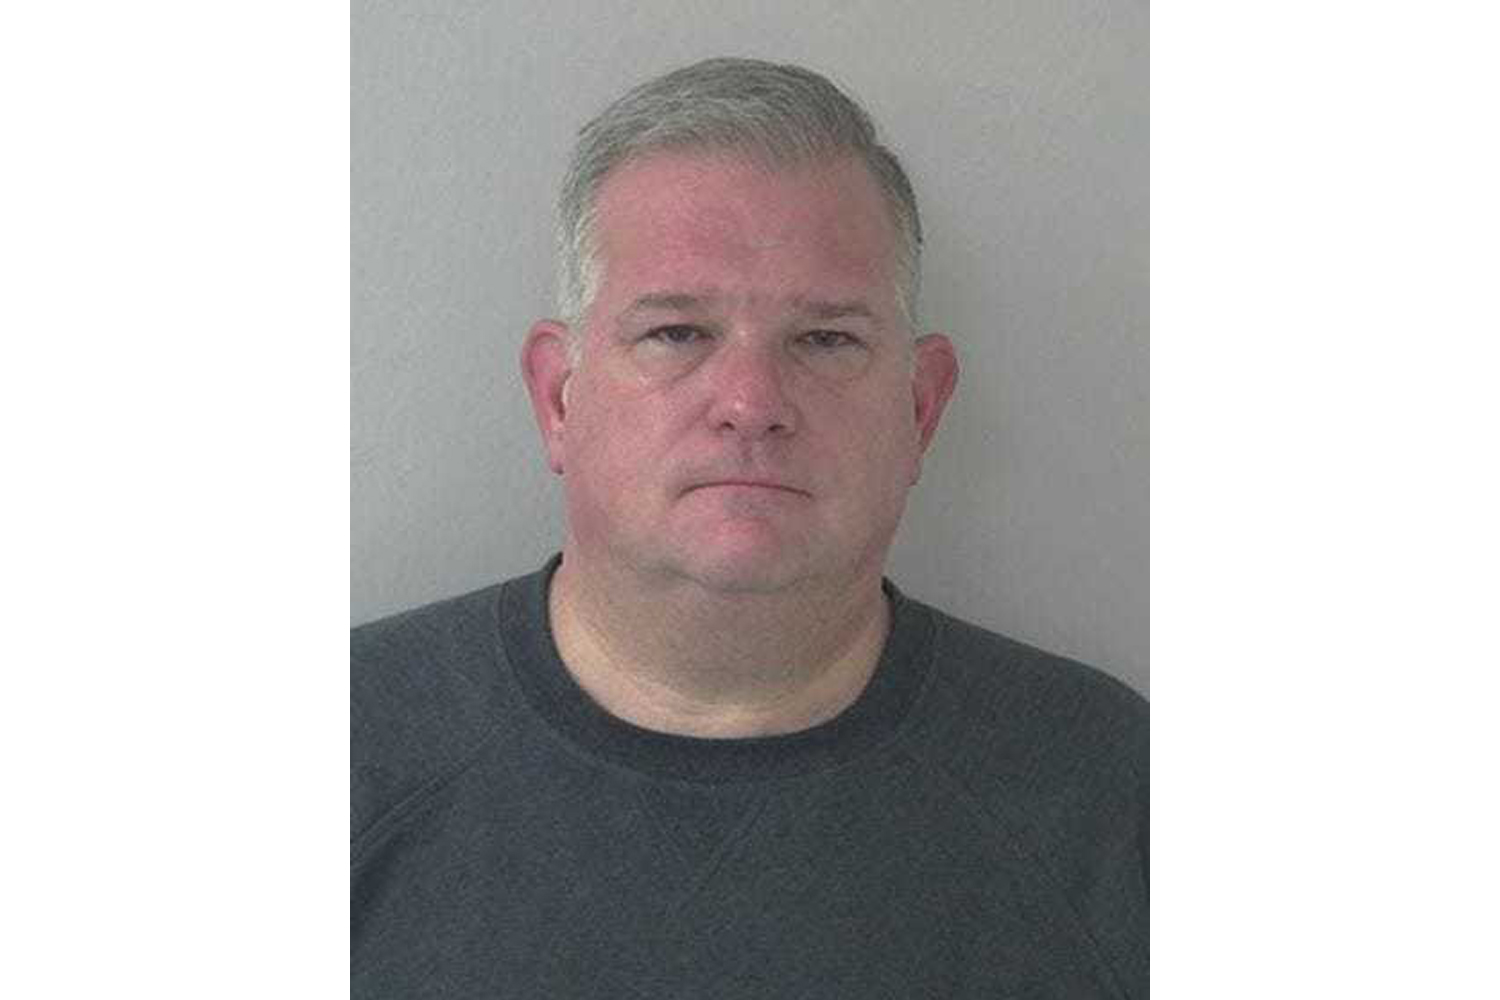 Former Franklin College President Thomas Minar in a mugshot from the Door County Sheriff's Office.